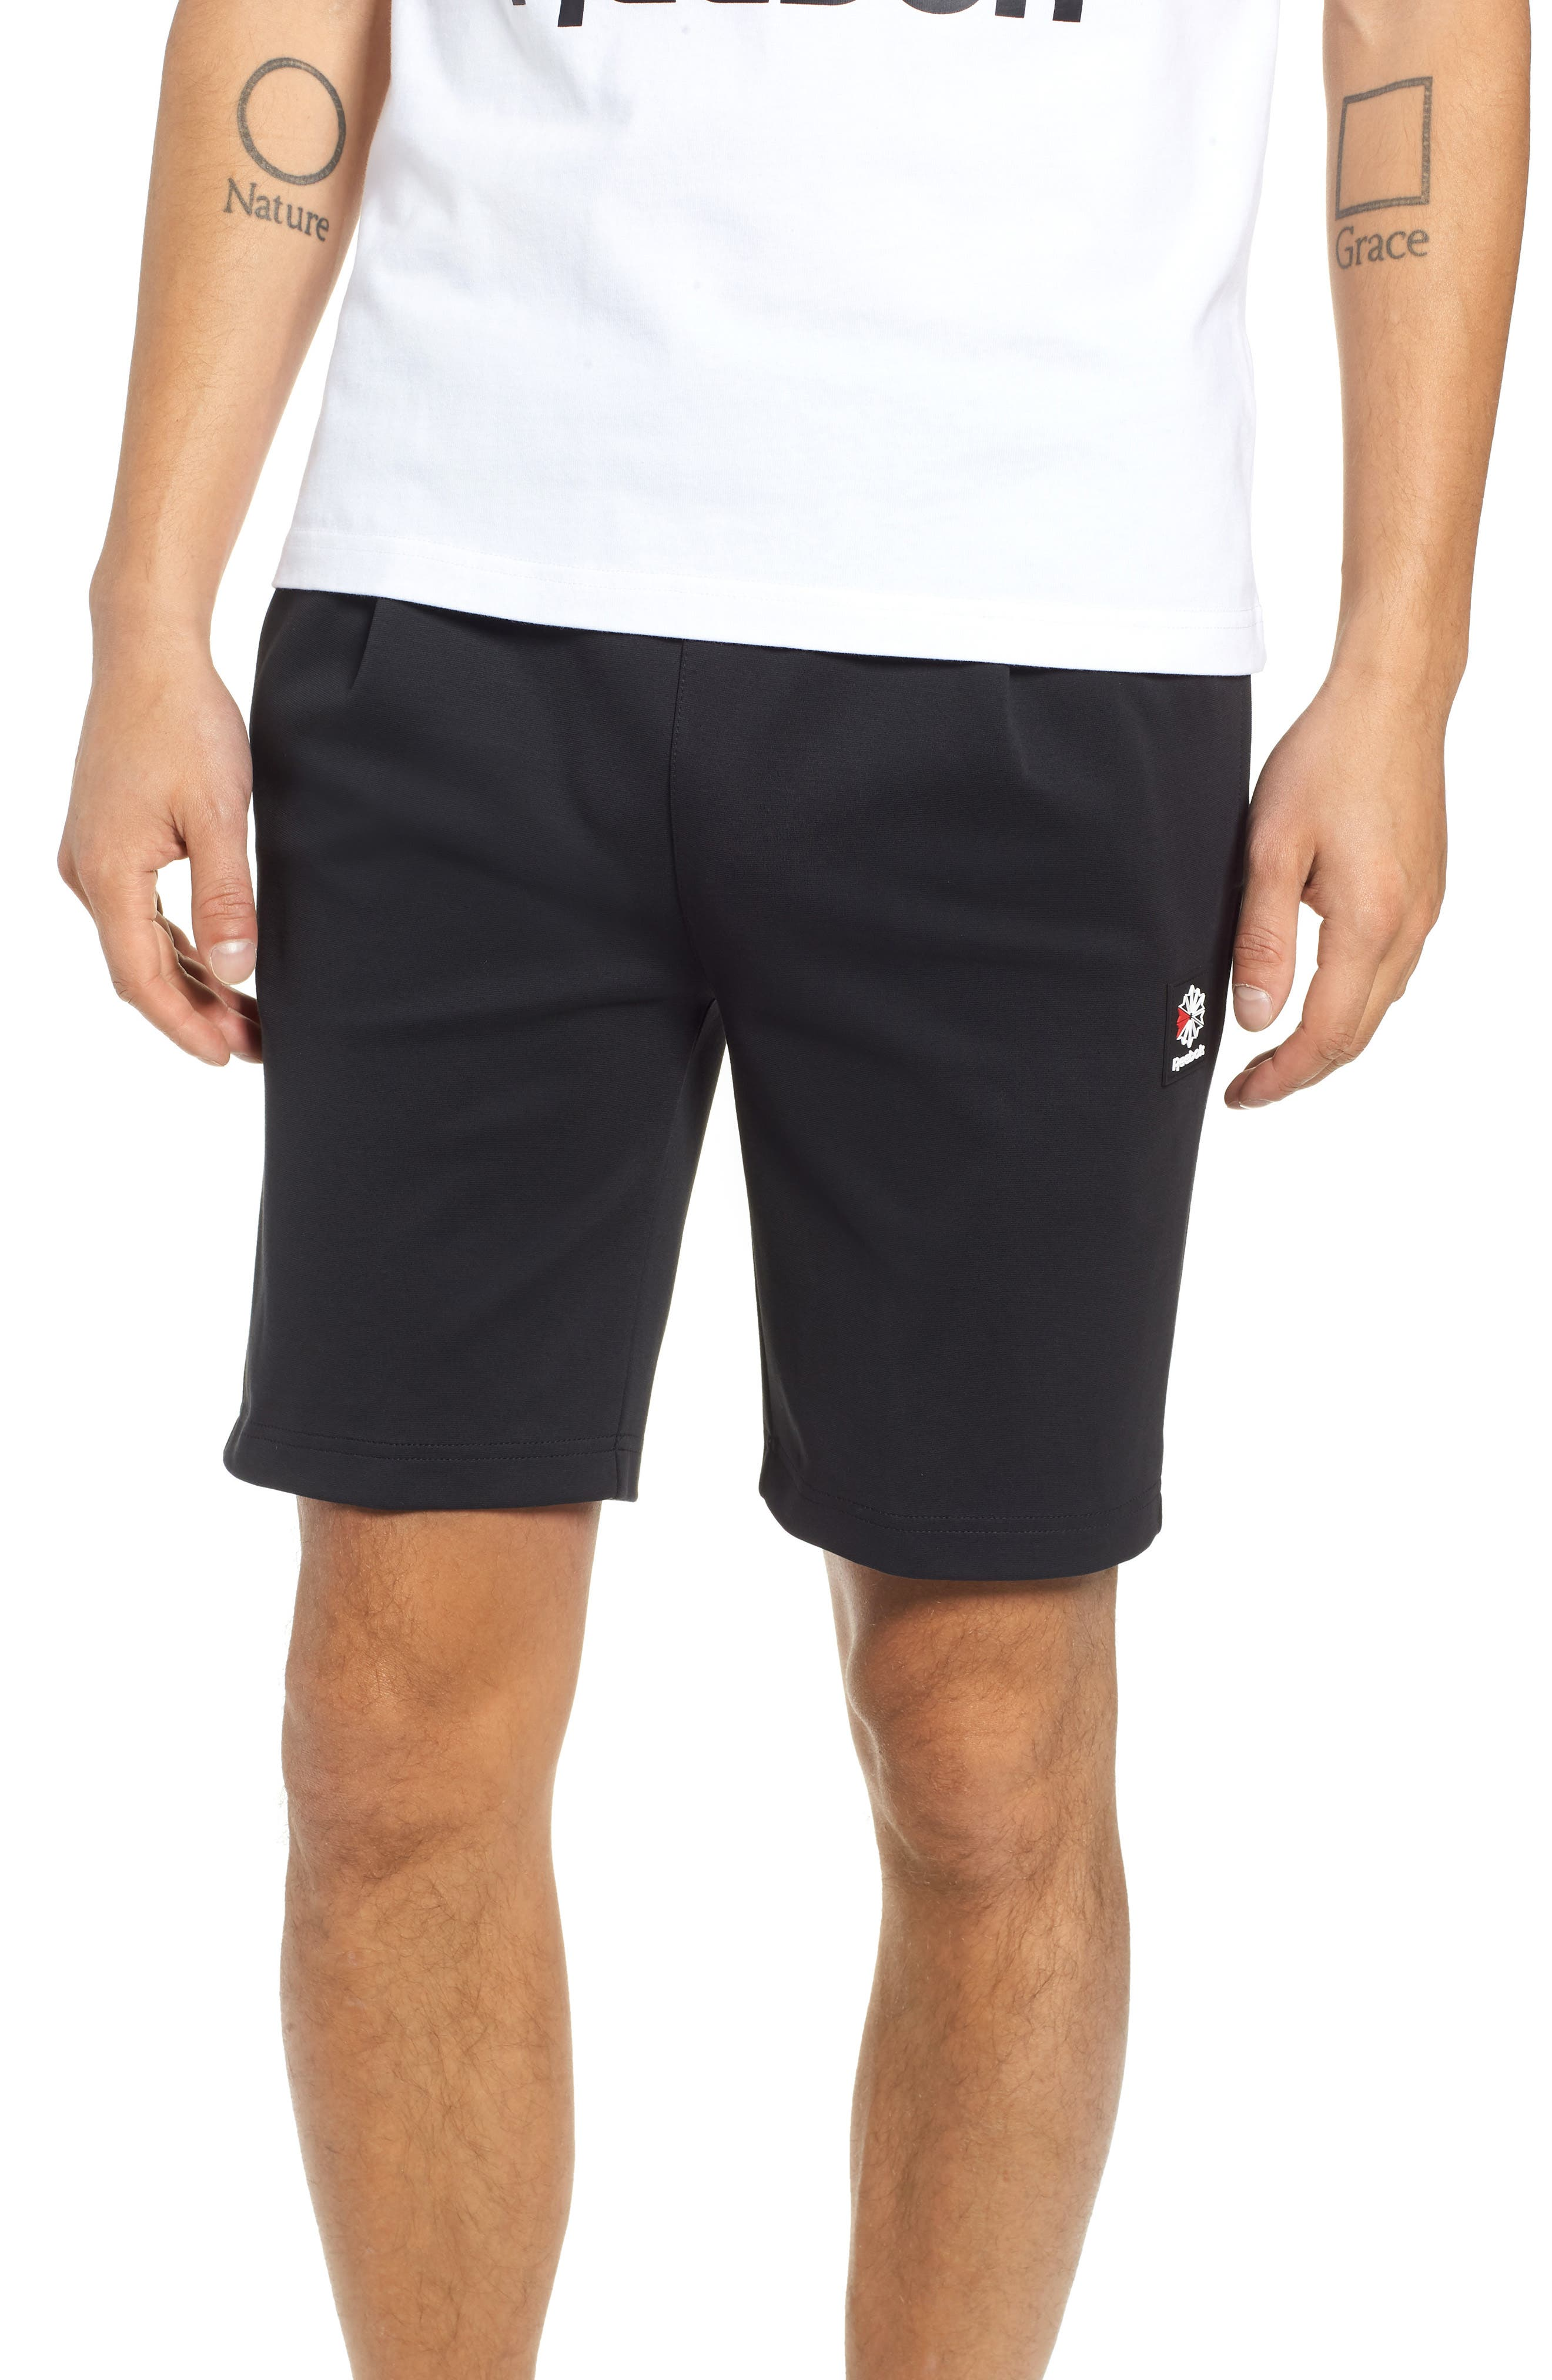 ES Shorts,                             Main thumbnail 1, color,                             BLACK